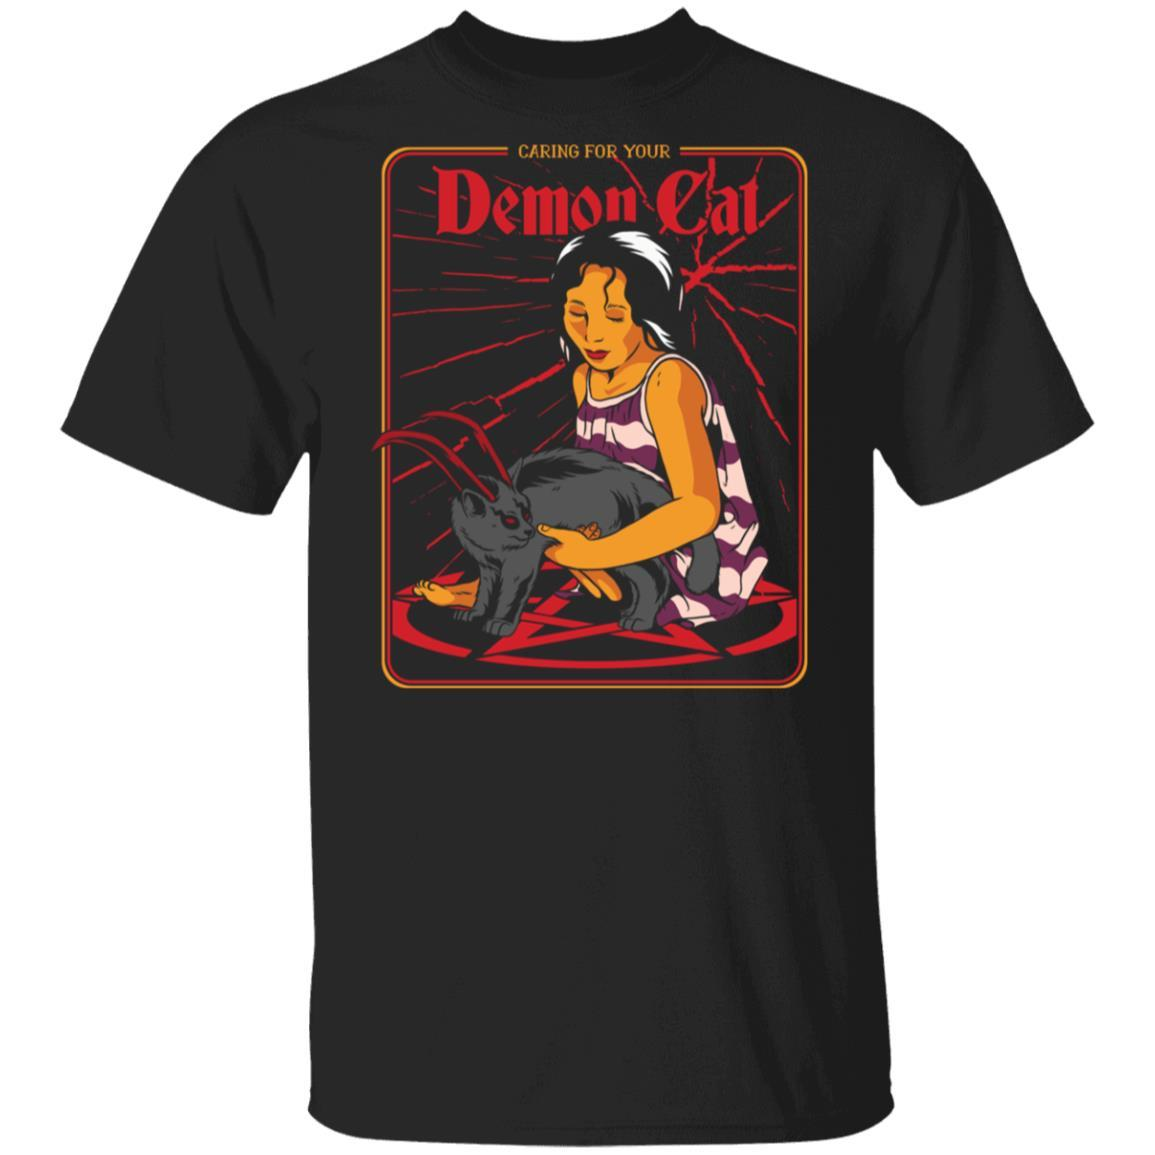 Caring For Your Demon Cat Halloween Costume for Cats Owners shirt t shirt